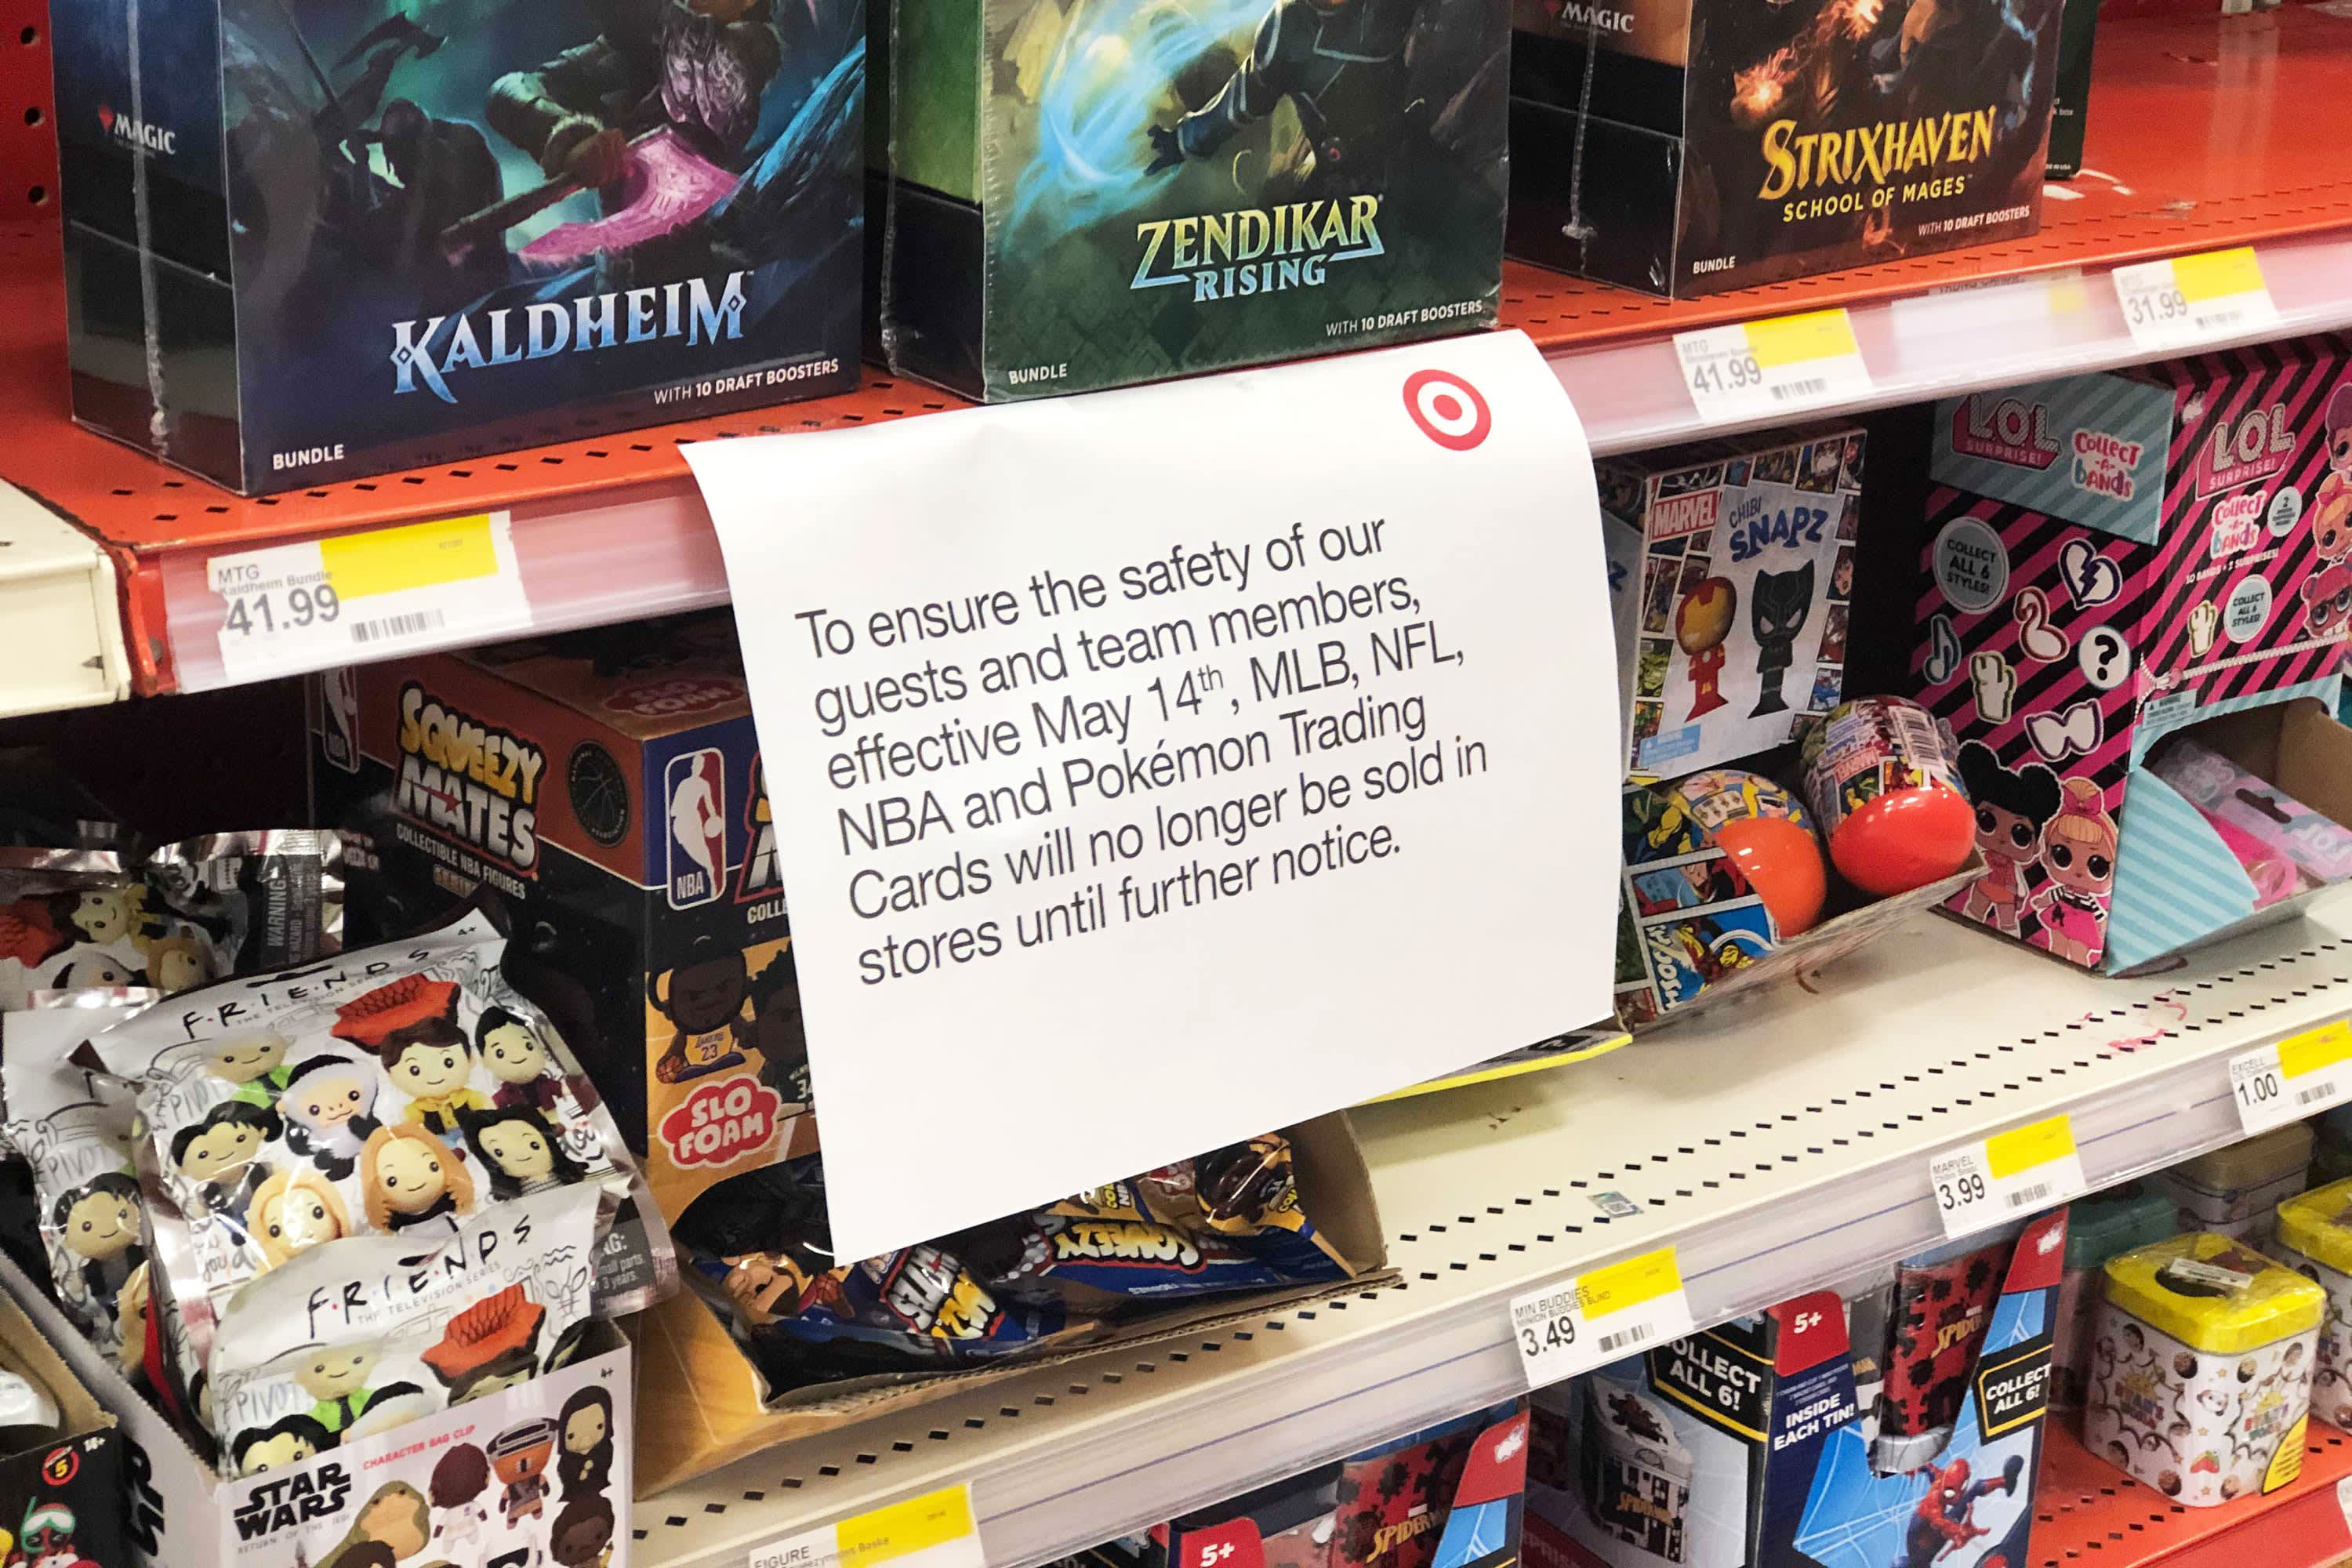 Target takes trading cards off of shelves temporarily after violent incident involving a gun